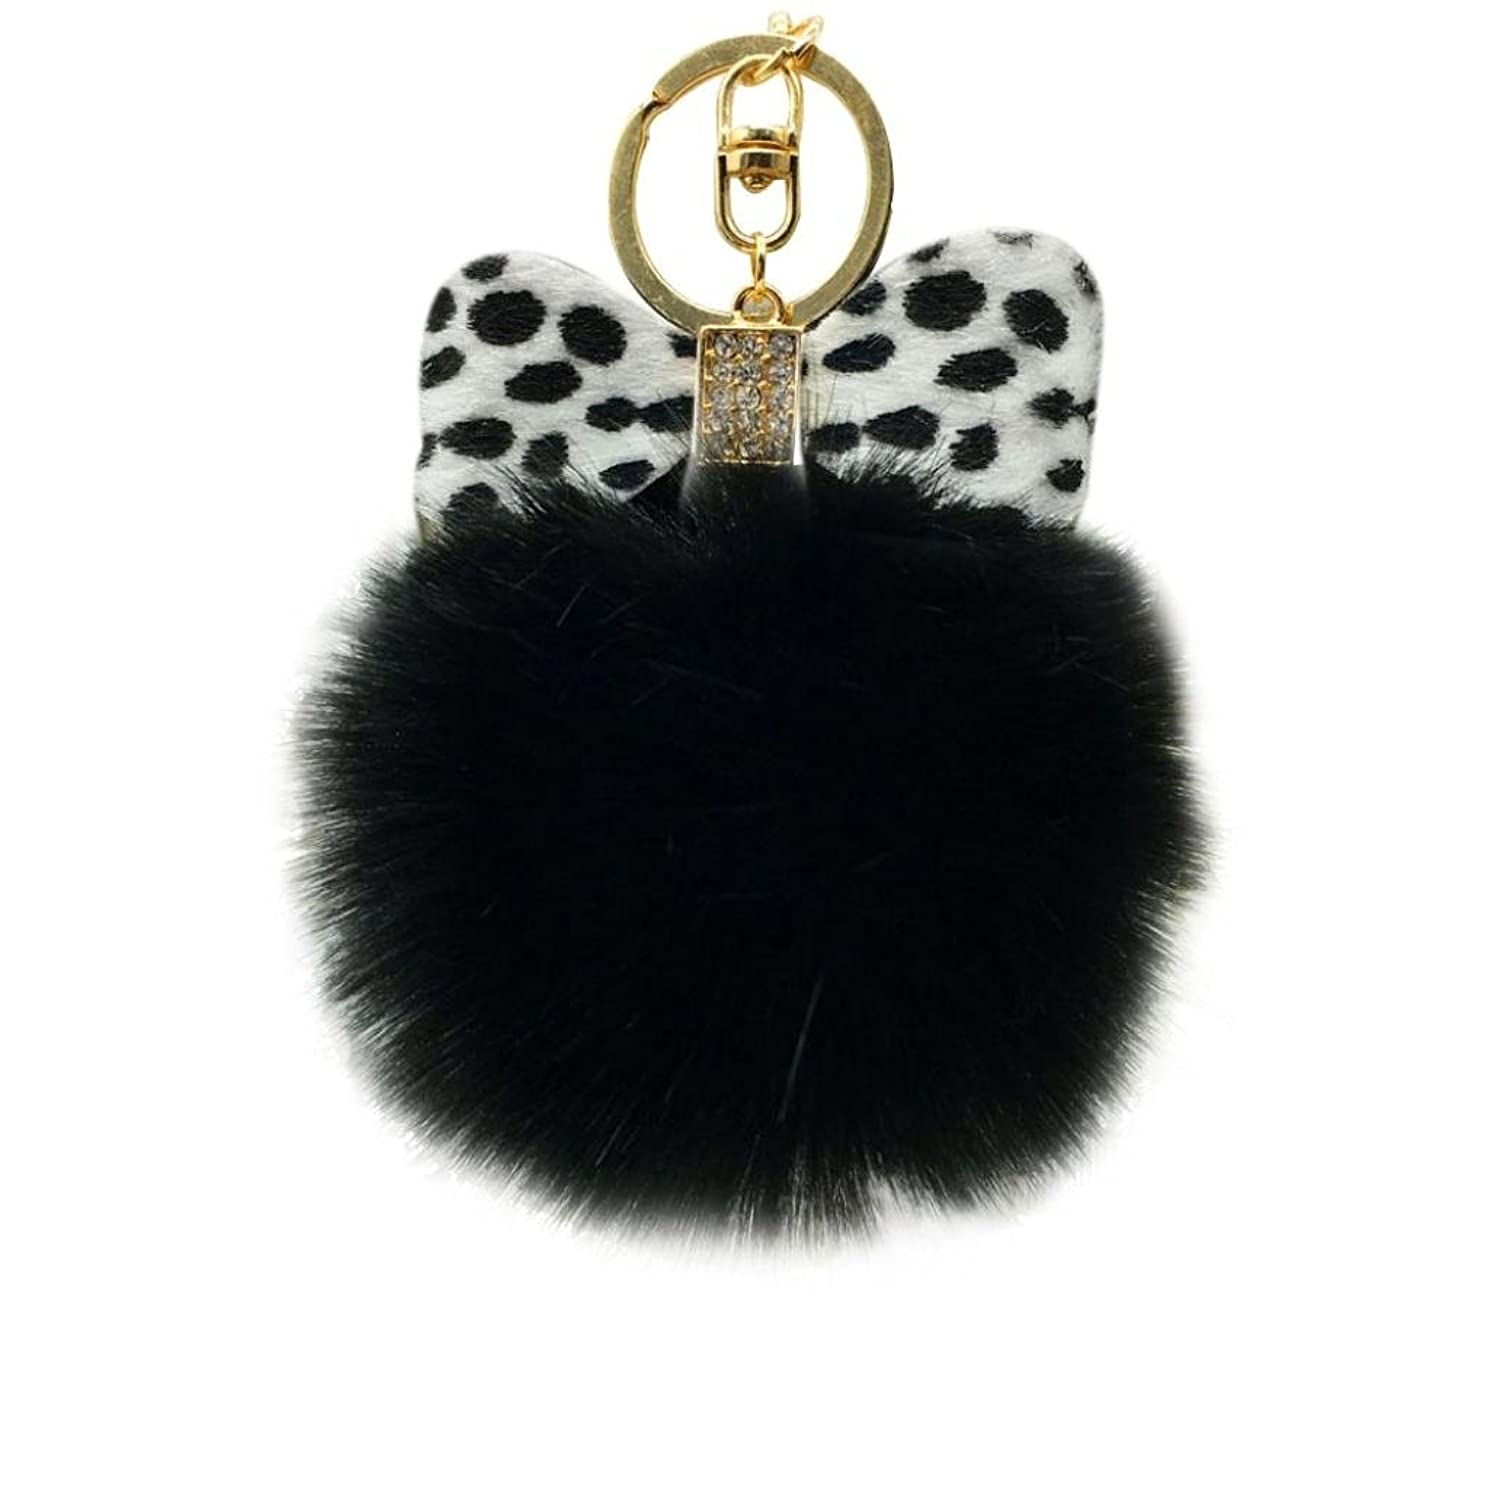 Amiley Faux Fur Pom Pom Bowknot Car Keychain Handbag Wallet Backpack Key Ring